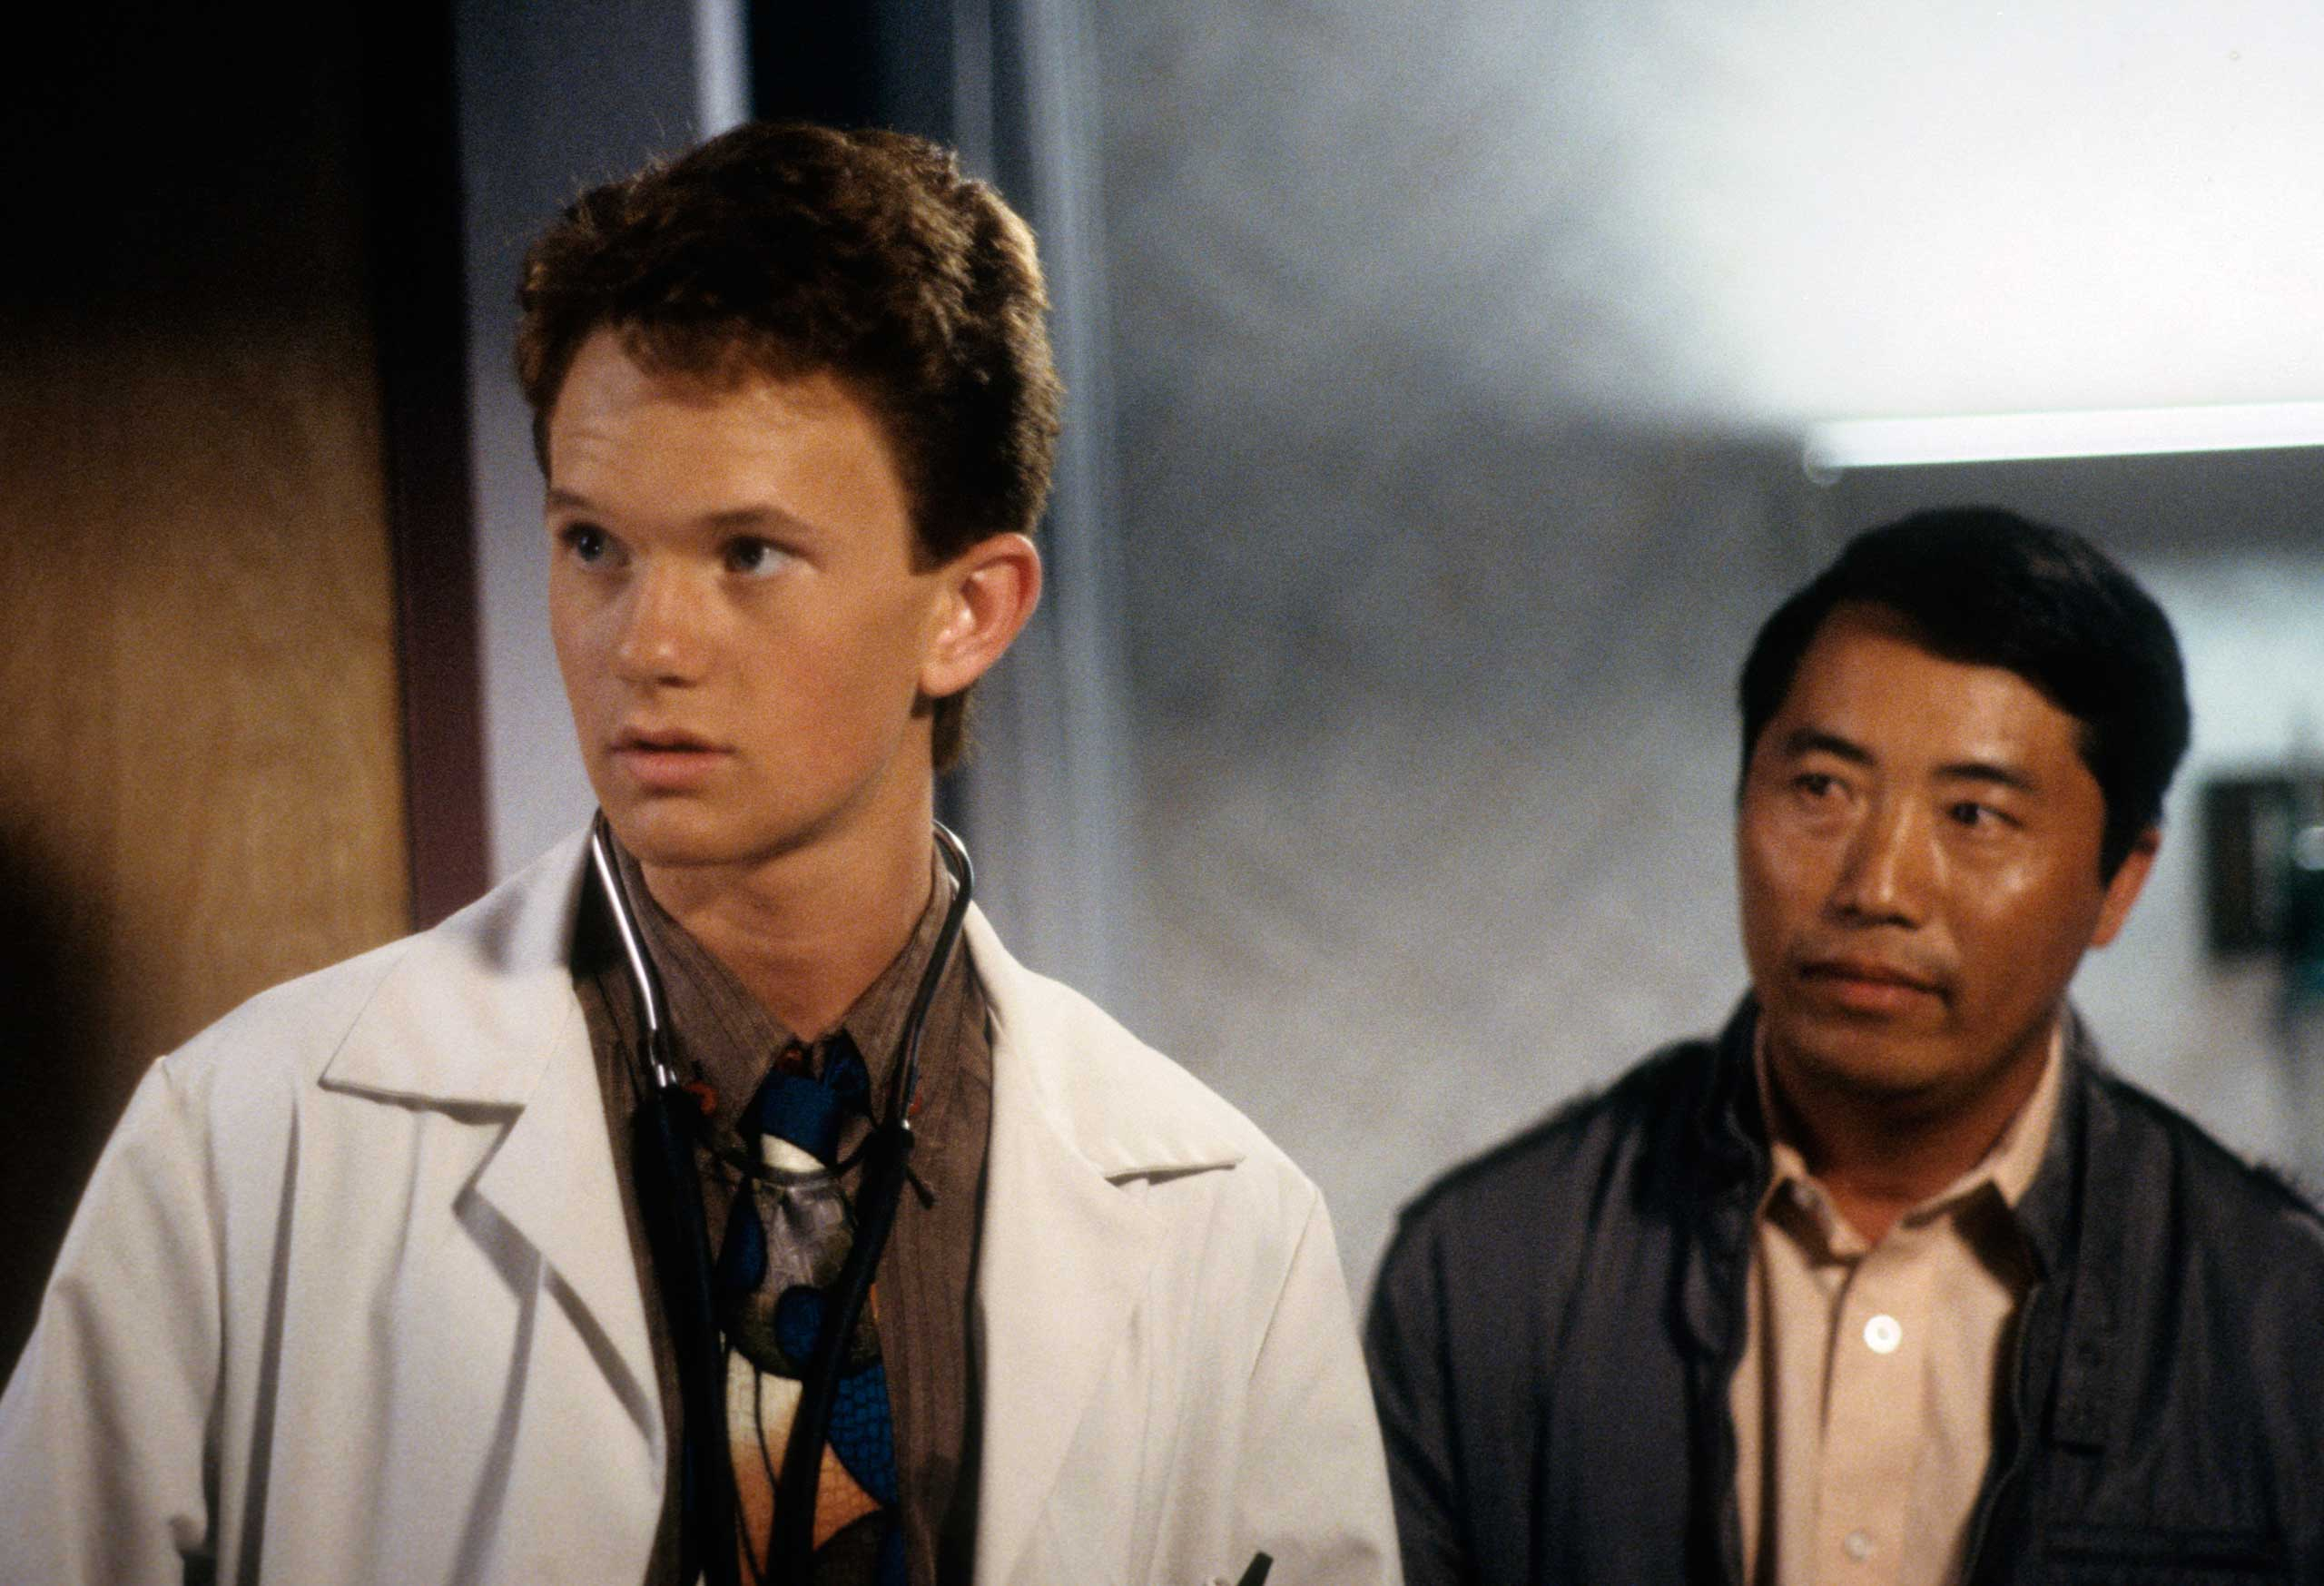 Neil Patrick Harris got his break as a teenage doctor who aced the SATs at 9 in Doogie Howser, M.D. in 1991. Hard to believe he grew up to be Barney Stinson.